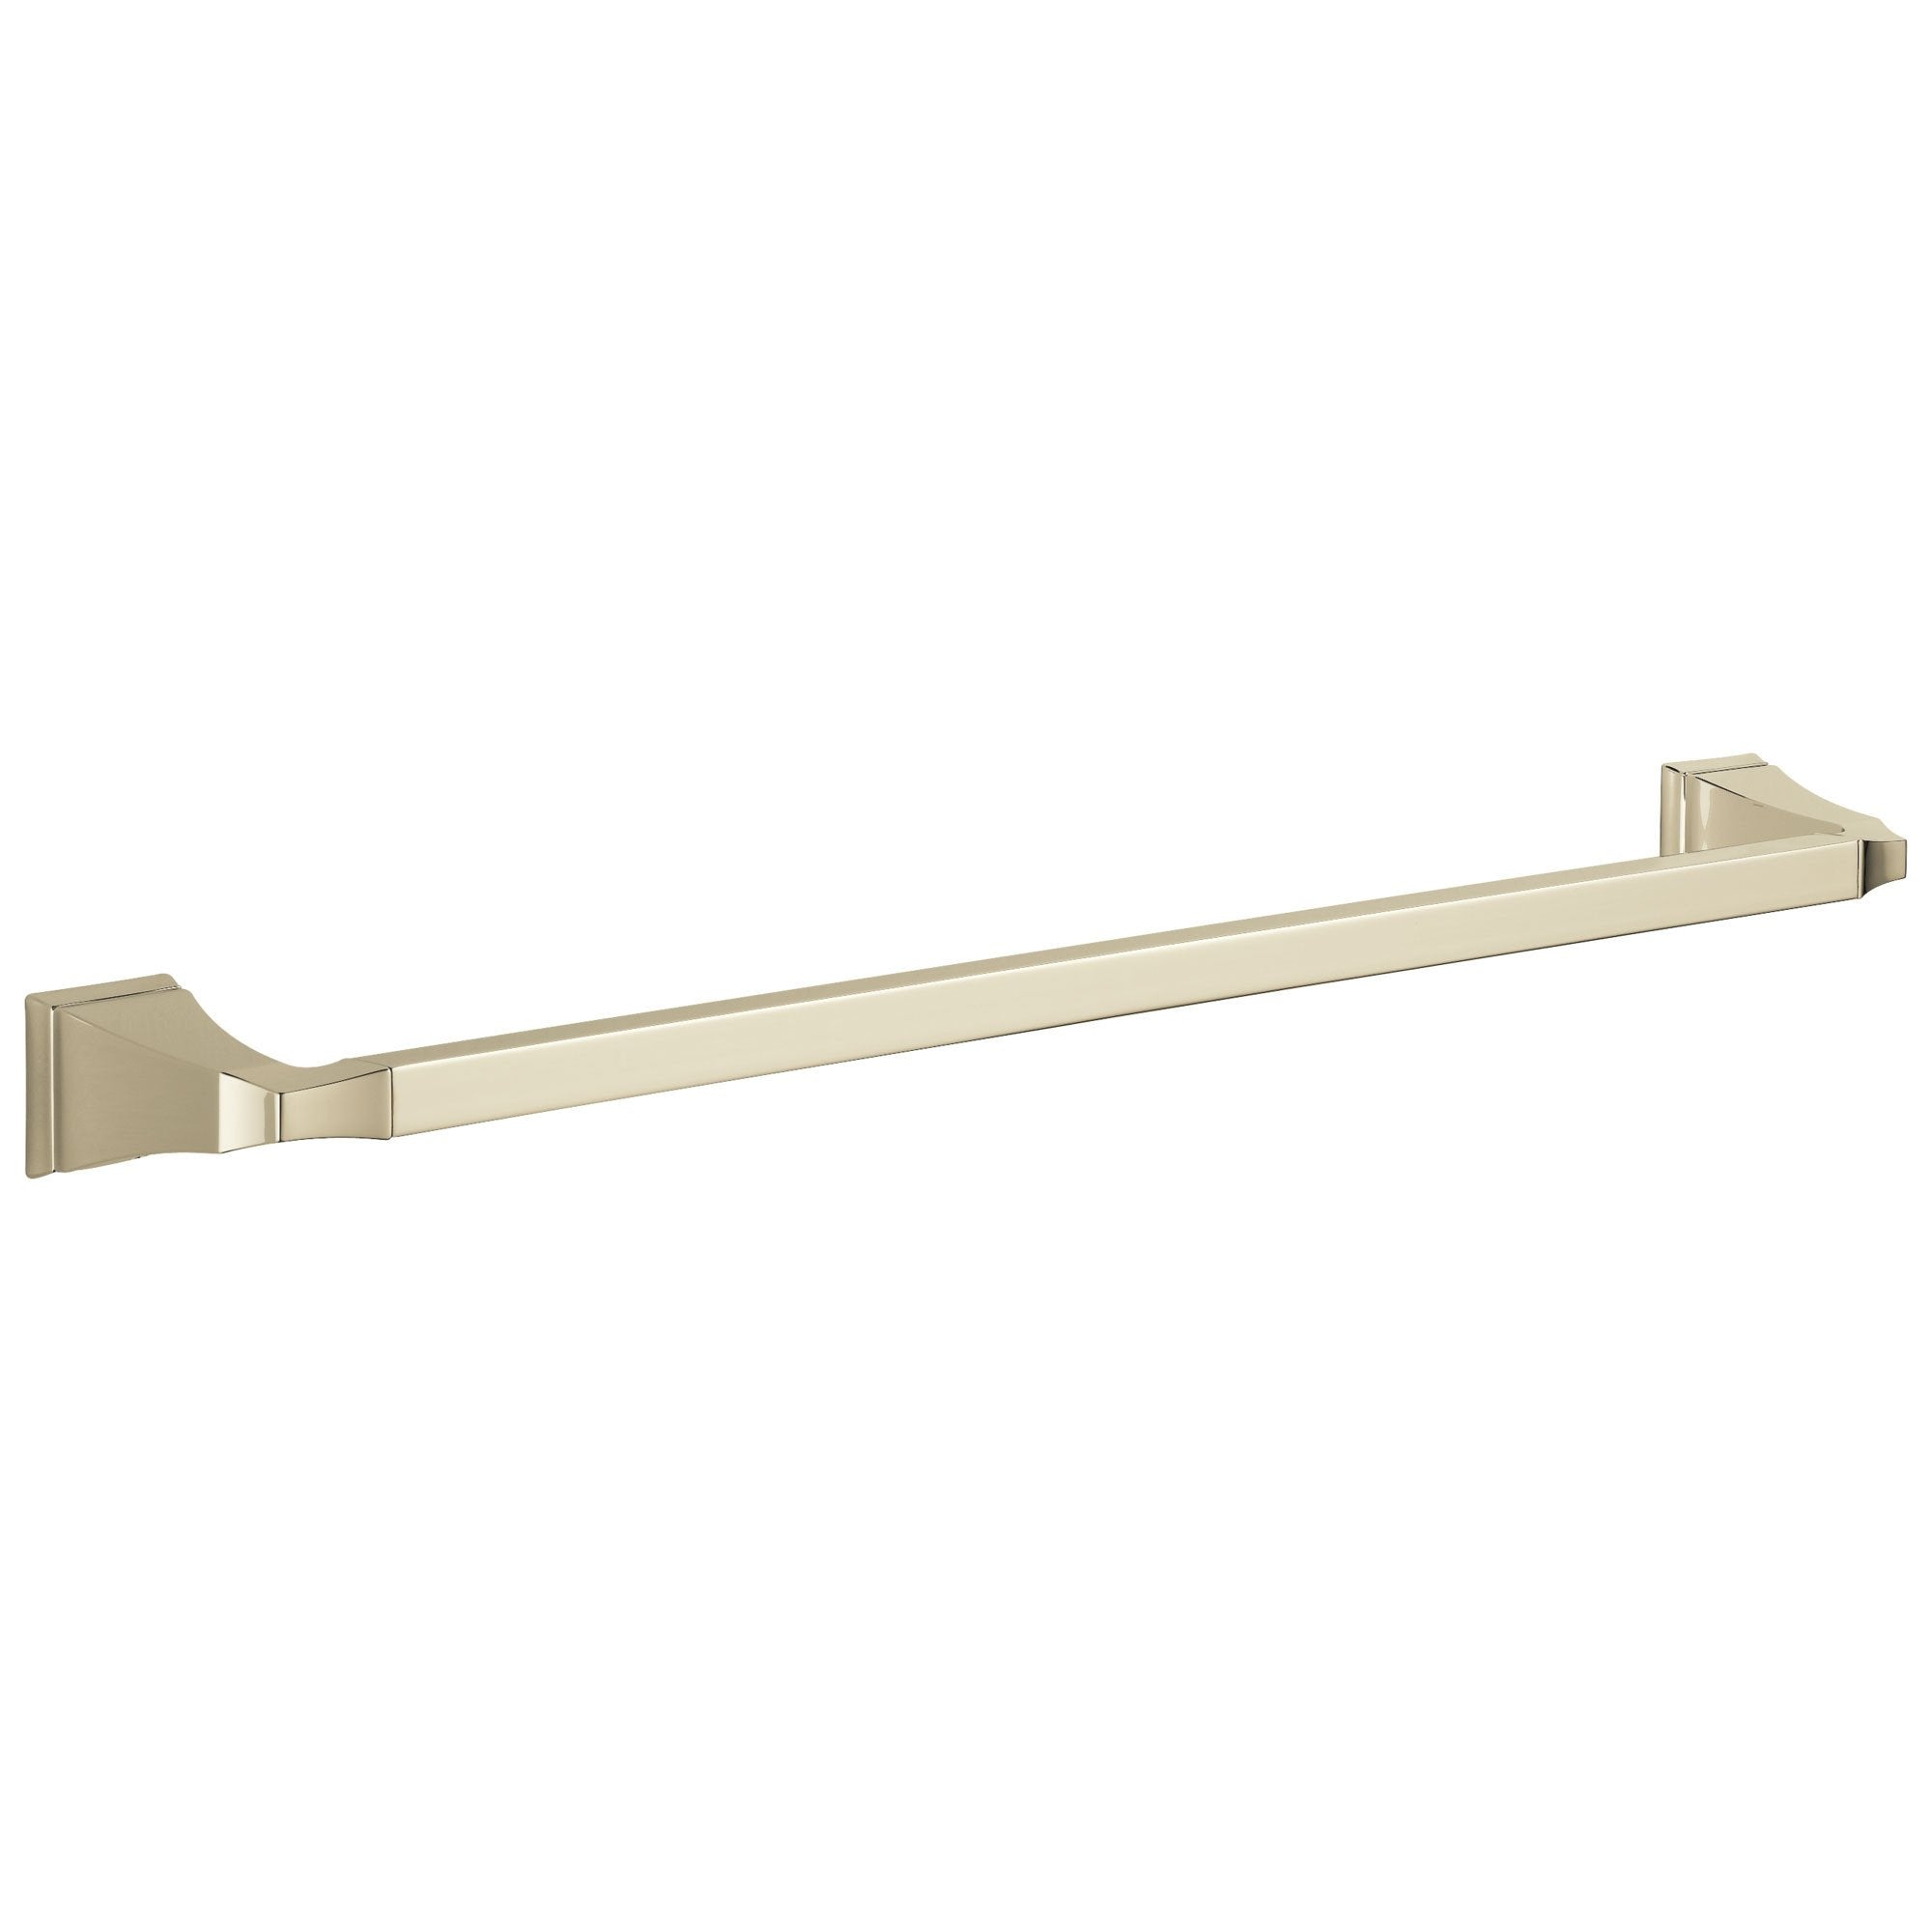 "Delta Dryden Collection Polished Nickel Finish 24"" Single Towel Bar D75124PN"